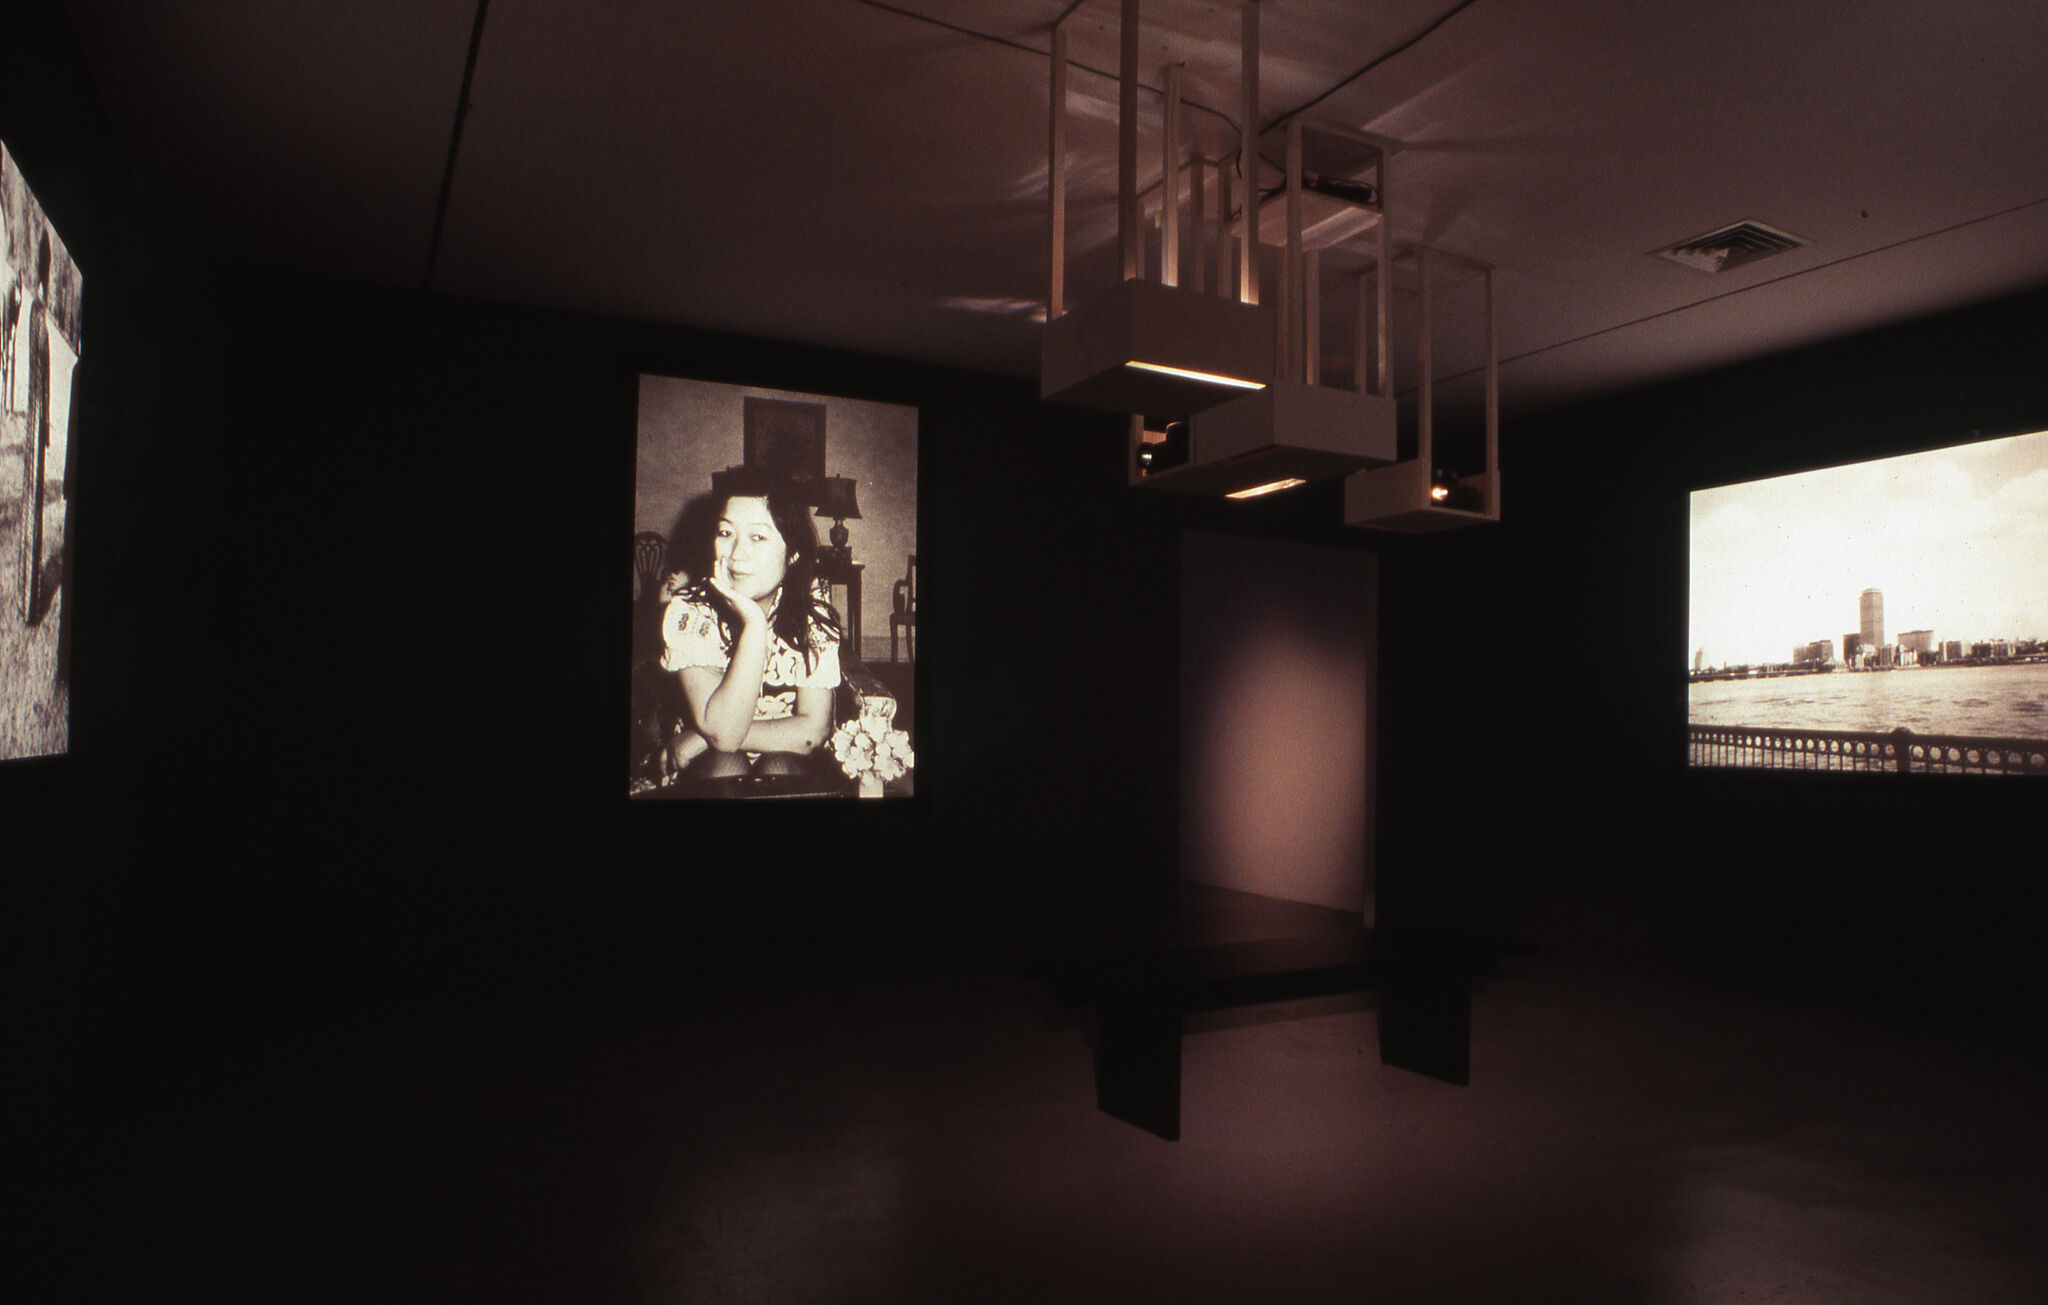 A dark gallery space with a projection of a portrait of a woman, and a projection of a cityscape.